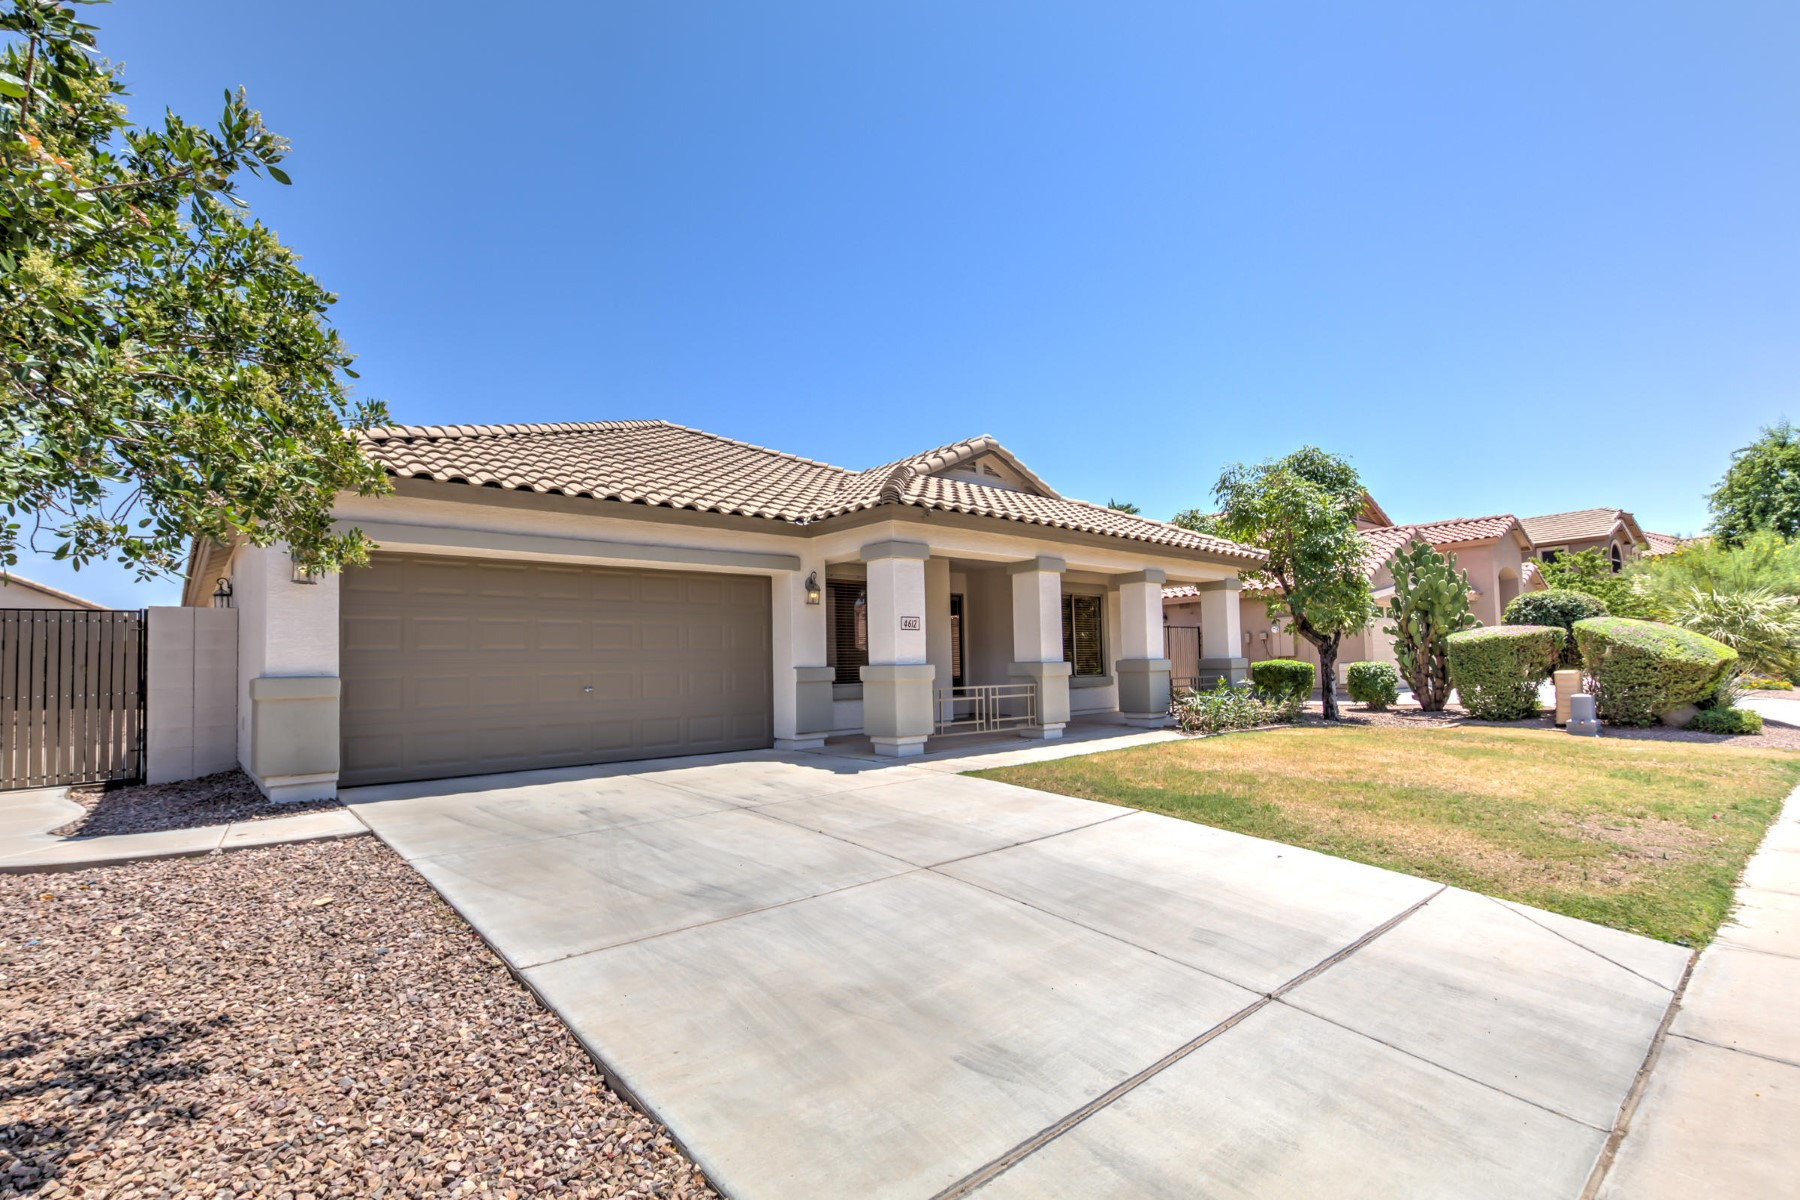 Maison unifamiliale pour l Vente à Beautiful 4 bedroom single level home in the East Valley 4612 E Desert Sands Dr Chandler, Arizona 85249 États-Unis